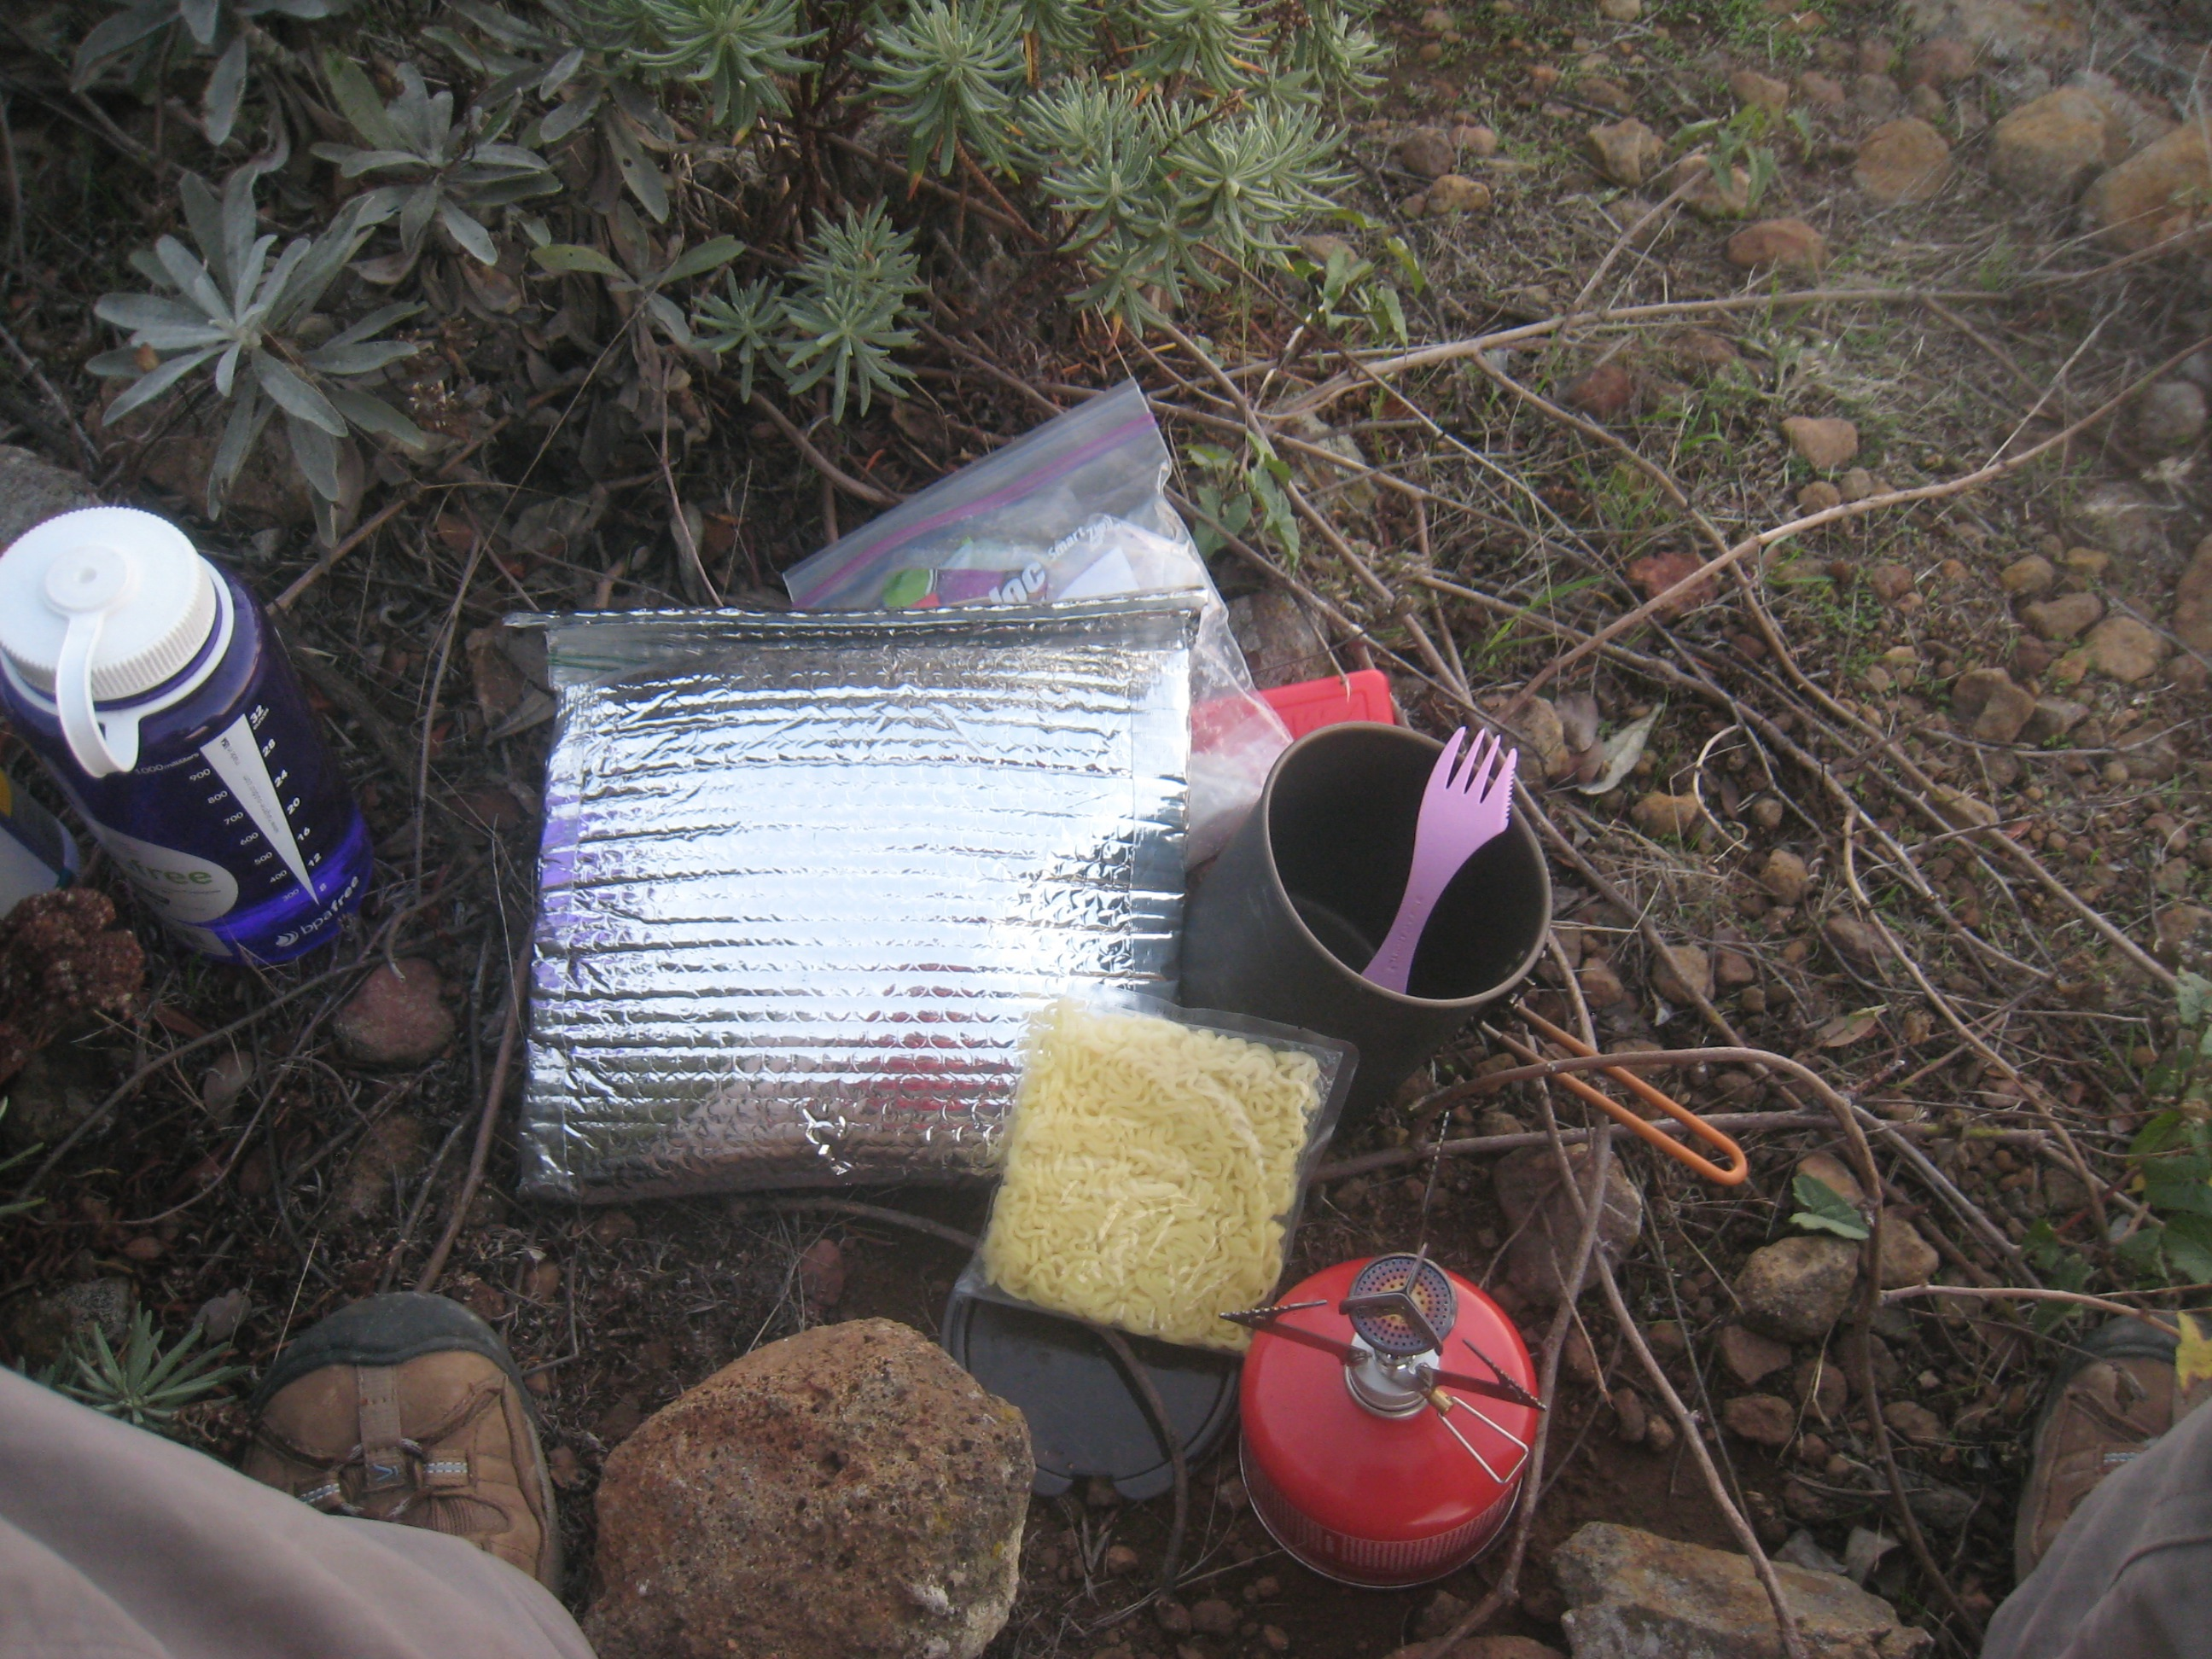 Camp kitchen: MSR Pocket Rocket & solo pot, pink spork, & homemade cozy